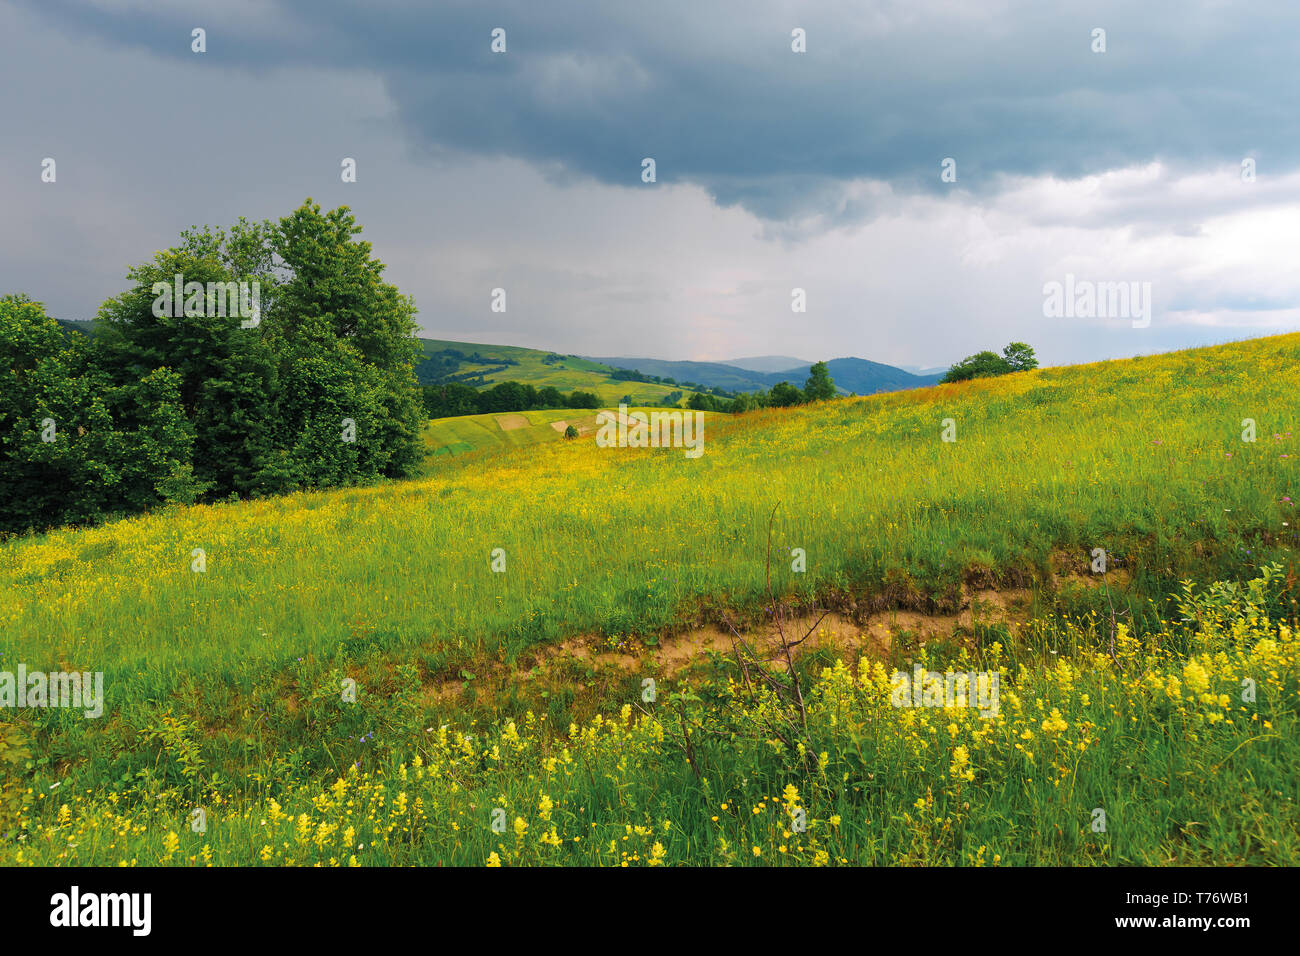 gloomy summer afternoon in mountains. trees on the edge of a rural field. wonderful countryside in dramatic weather before storm - Stock Image